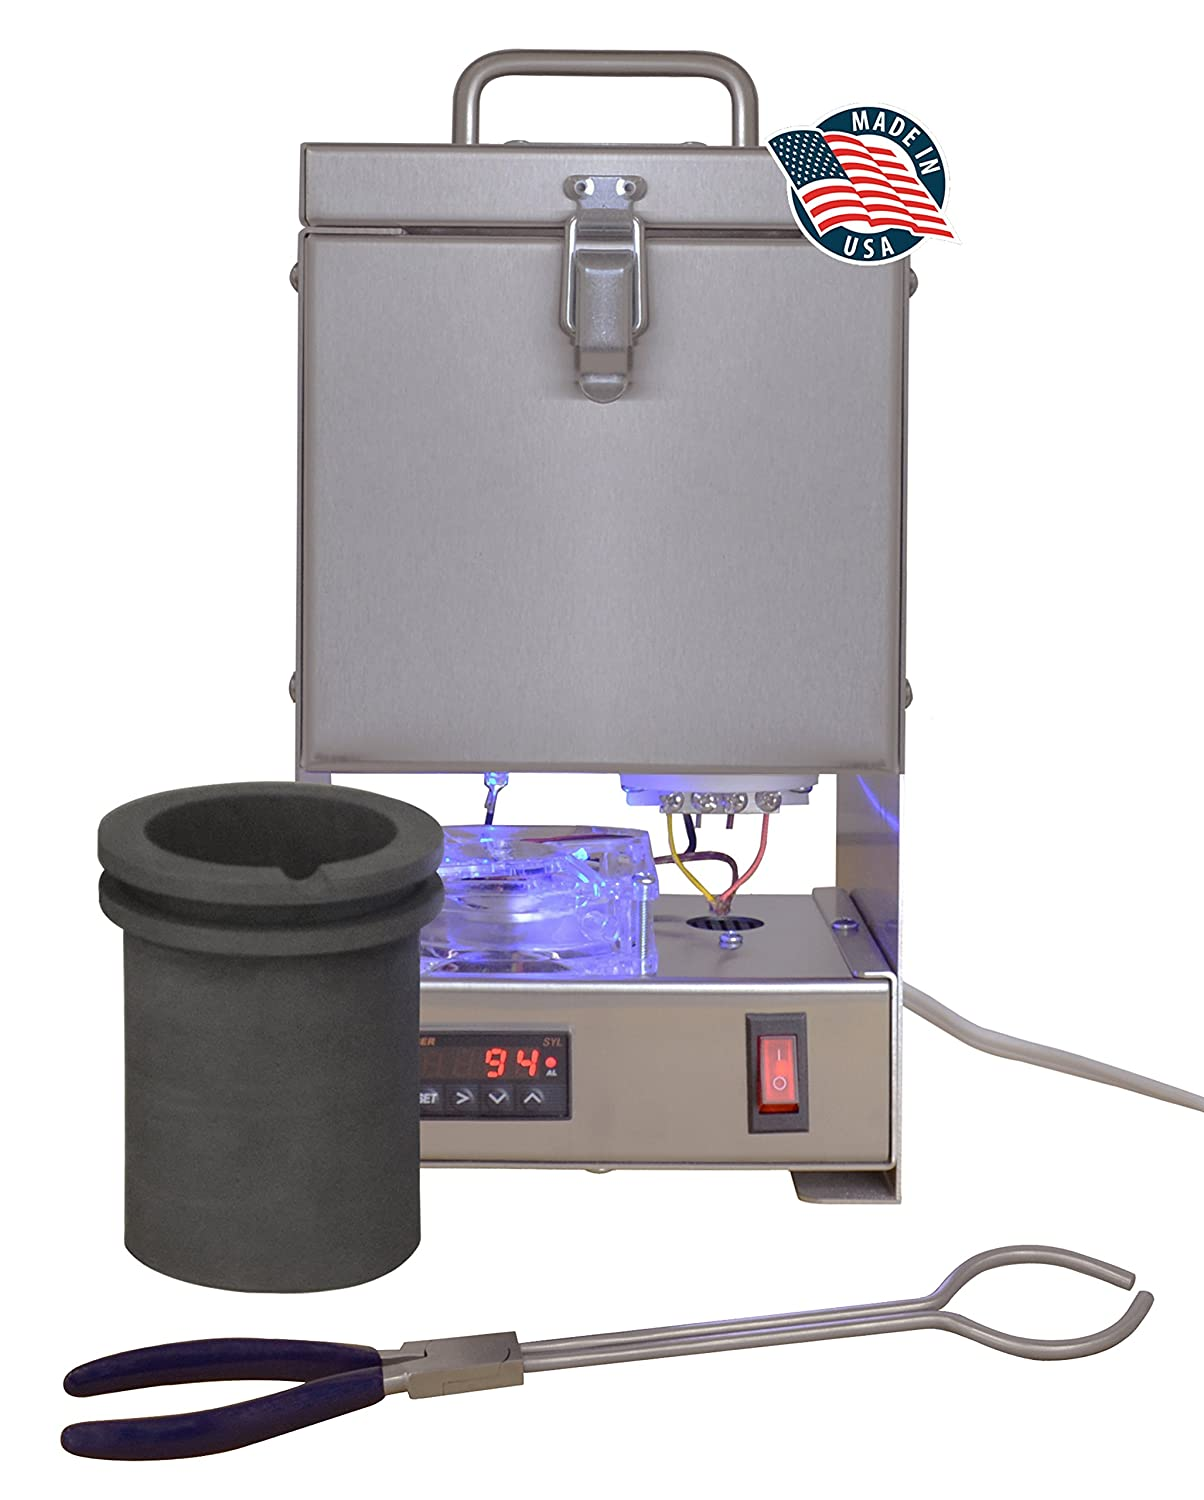 TableTop QuikMelt 100 oz PRO-100 Melting Furnace - Stainless Steel Kiln Jewelry Making Metal Melting Casting Enameling Glass Fusing Precious Metal Clay Kiln PMC Supplies FUR-0075